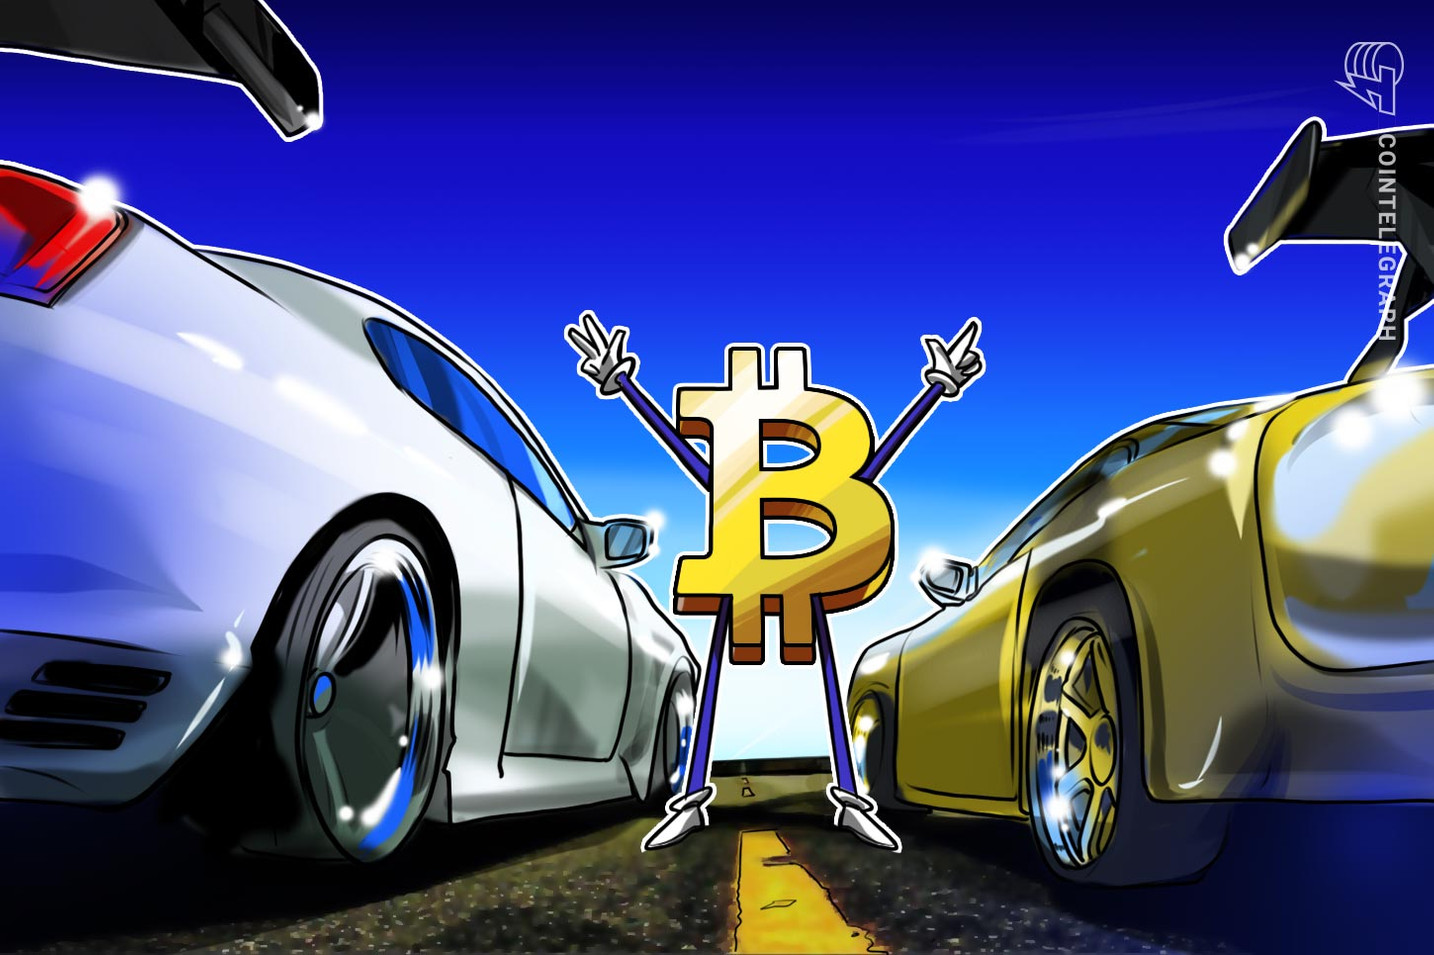 One Bitcoin at $34K now buys one Tesla after Elon Musk has a Dogecoin Christmas